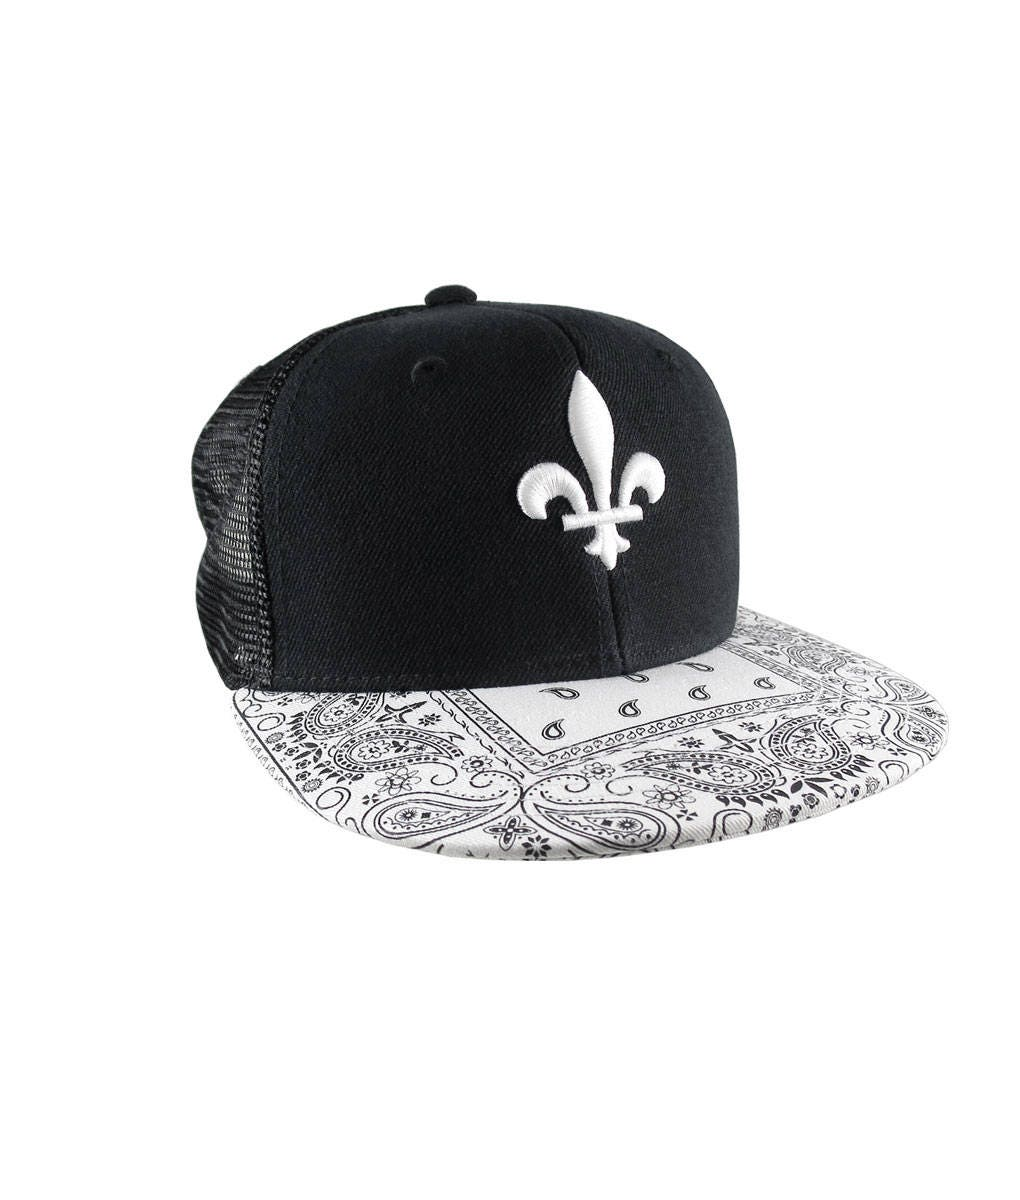 3D Puff Embroidery White Fleur-de-Lis on a White Bandana Retro Flat Bill  Structured Adjustable Black Trucker Style Baseball Cap Snapback 5a6bb074490a